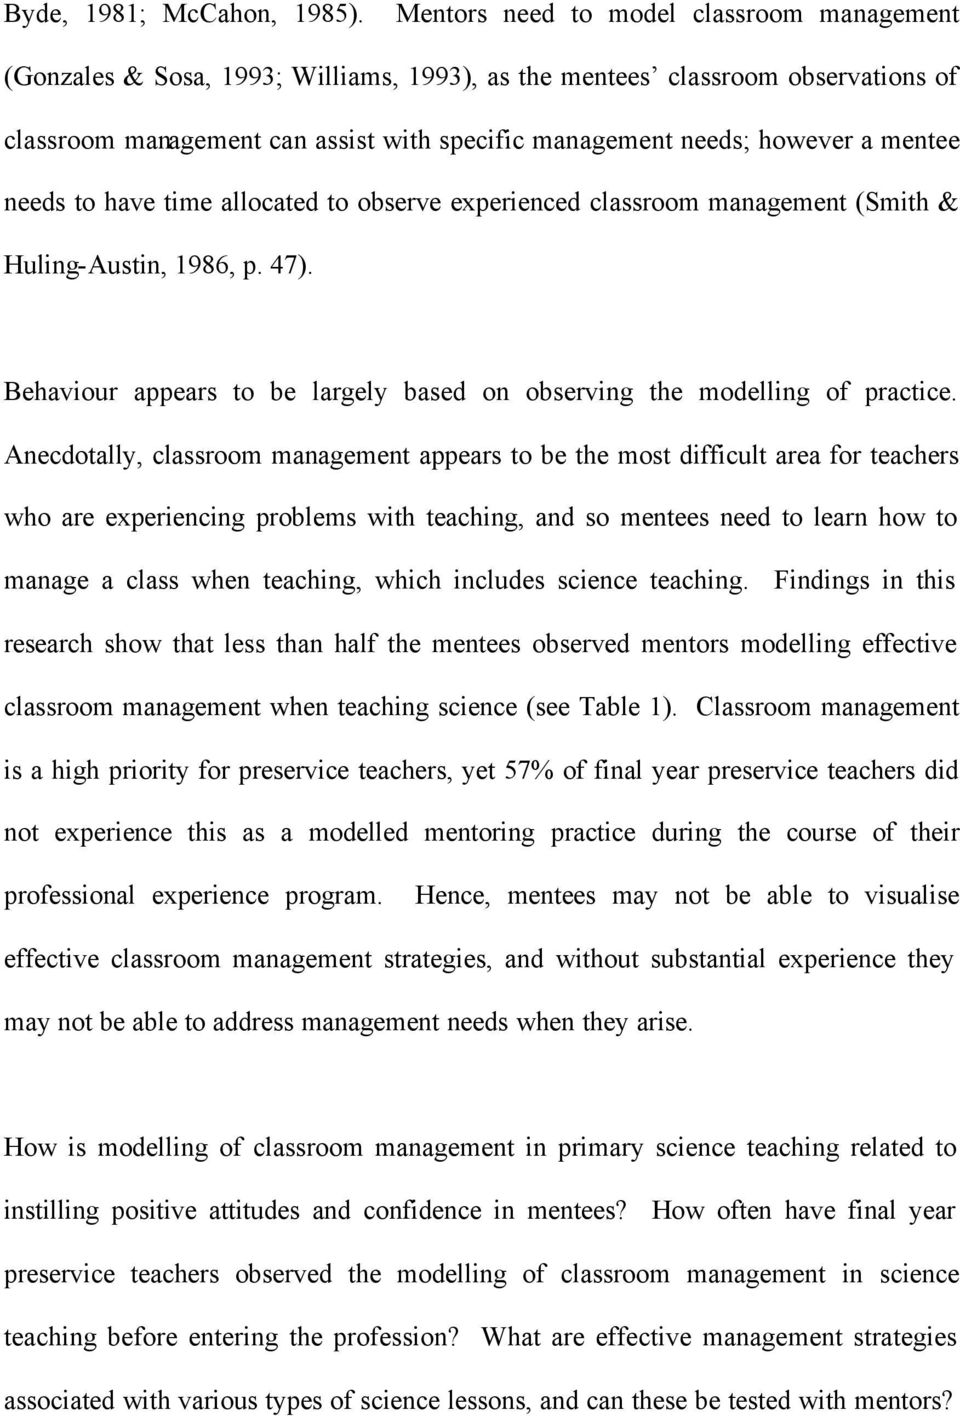 mentee needs to have time allocated to observe experienced classroom management (Smith & Huling-Austin, 1986, p. 47). Behaviour appears to be largely based on observing the modelling of practice.